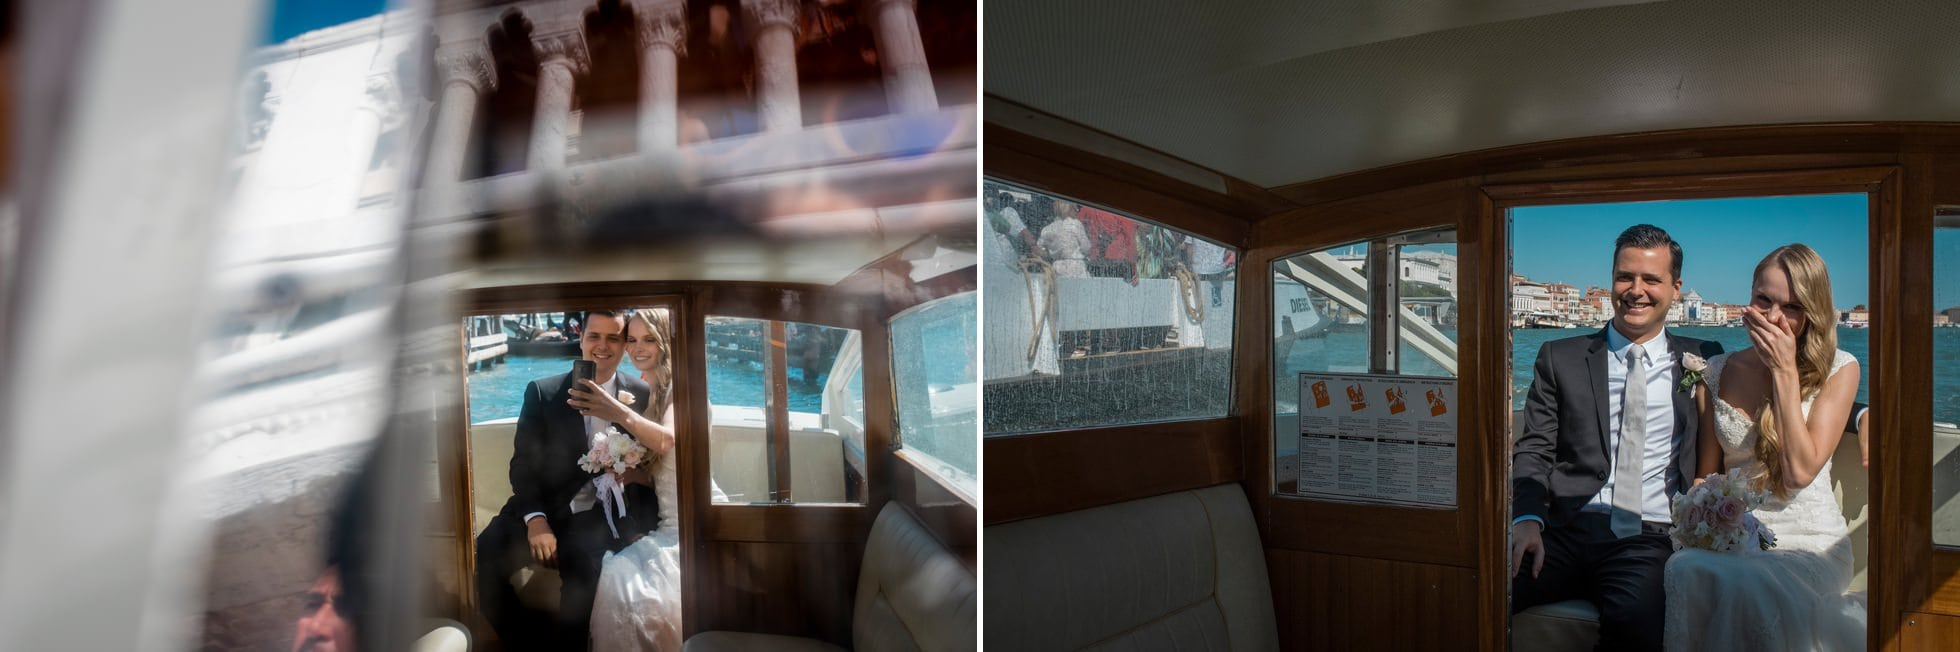 wedding photographer taxi boat